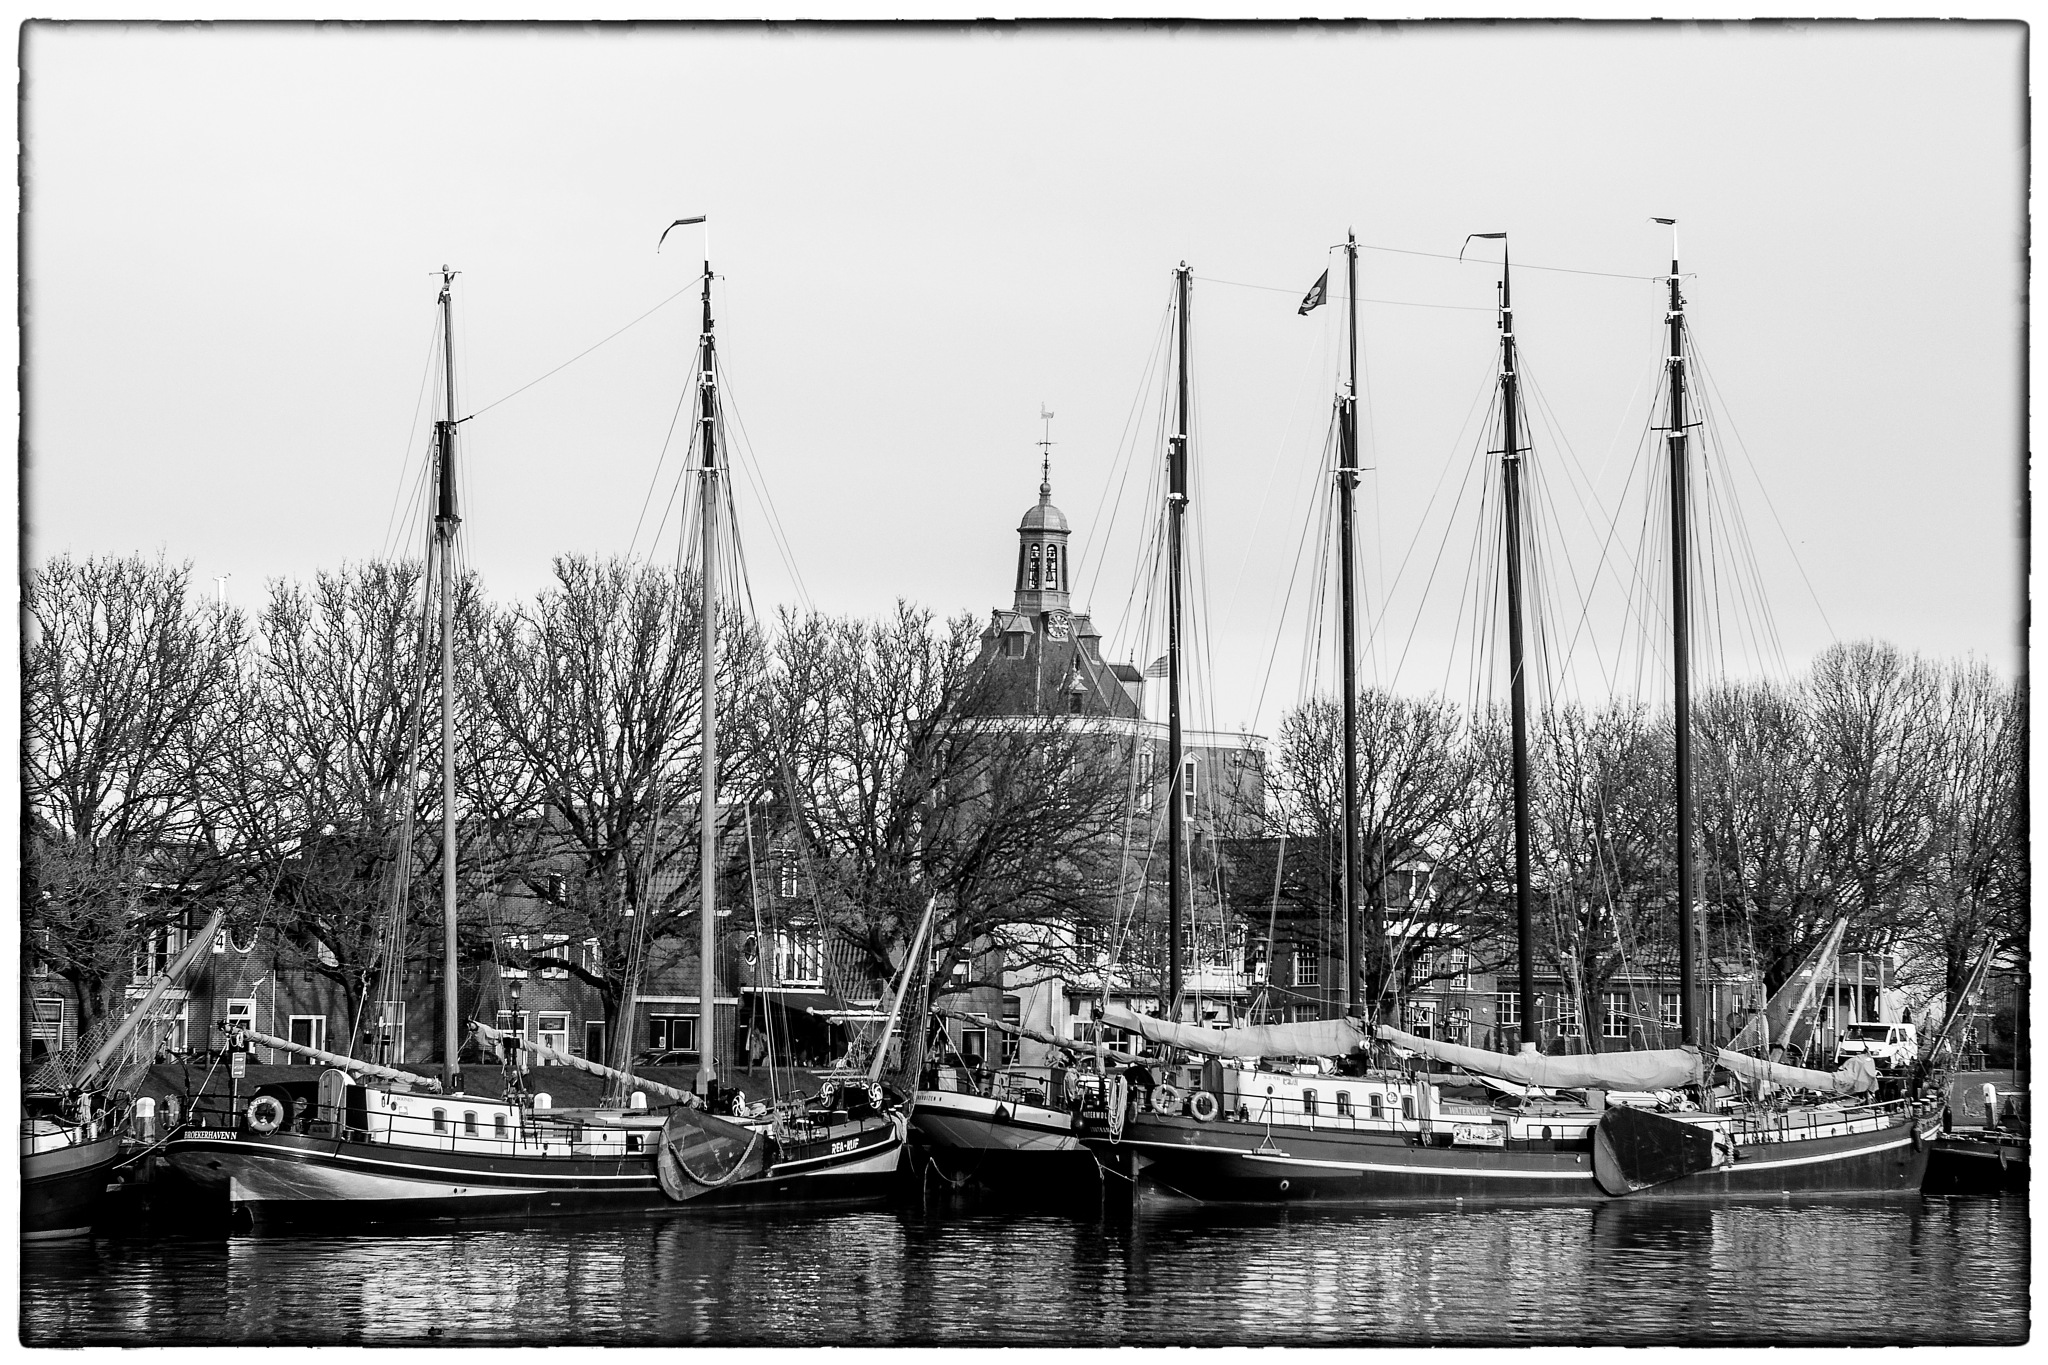 old ships in the port of Enkhuizen 2 by Sjaak Buis